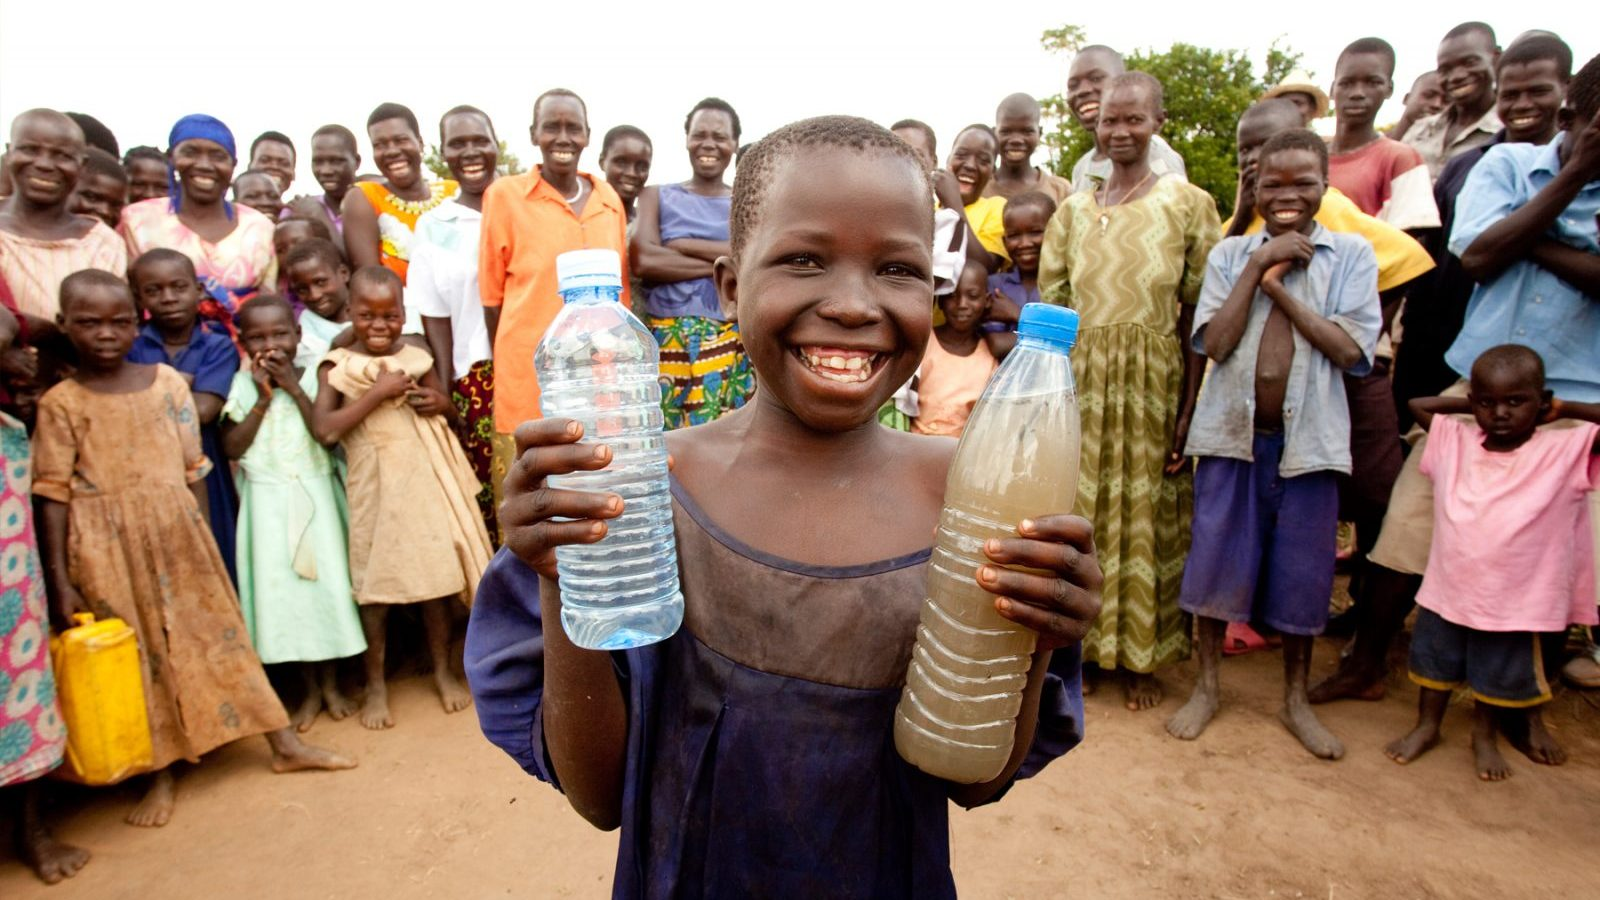 Image: child holds two water bottles one with clean healthy drinking water the other with brown muddy water, behind him are a crowd of people